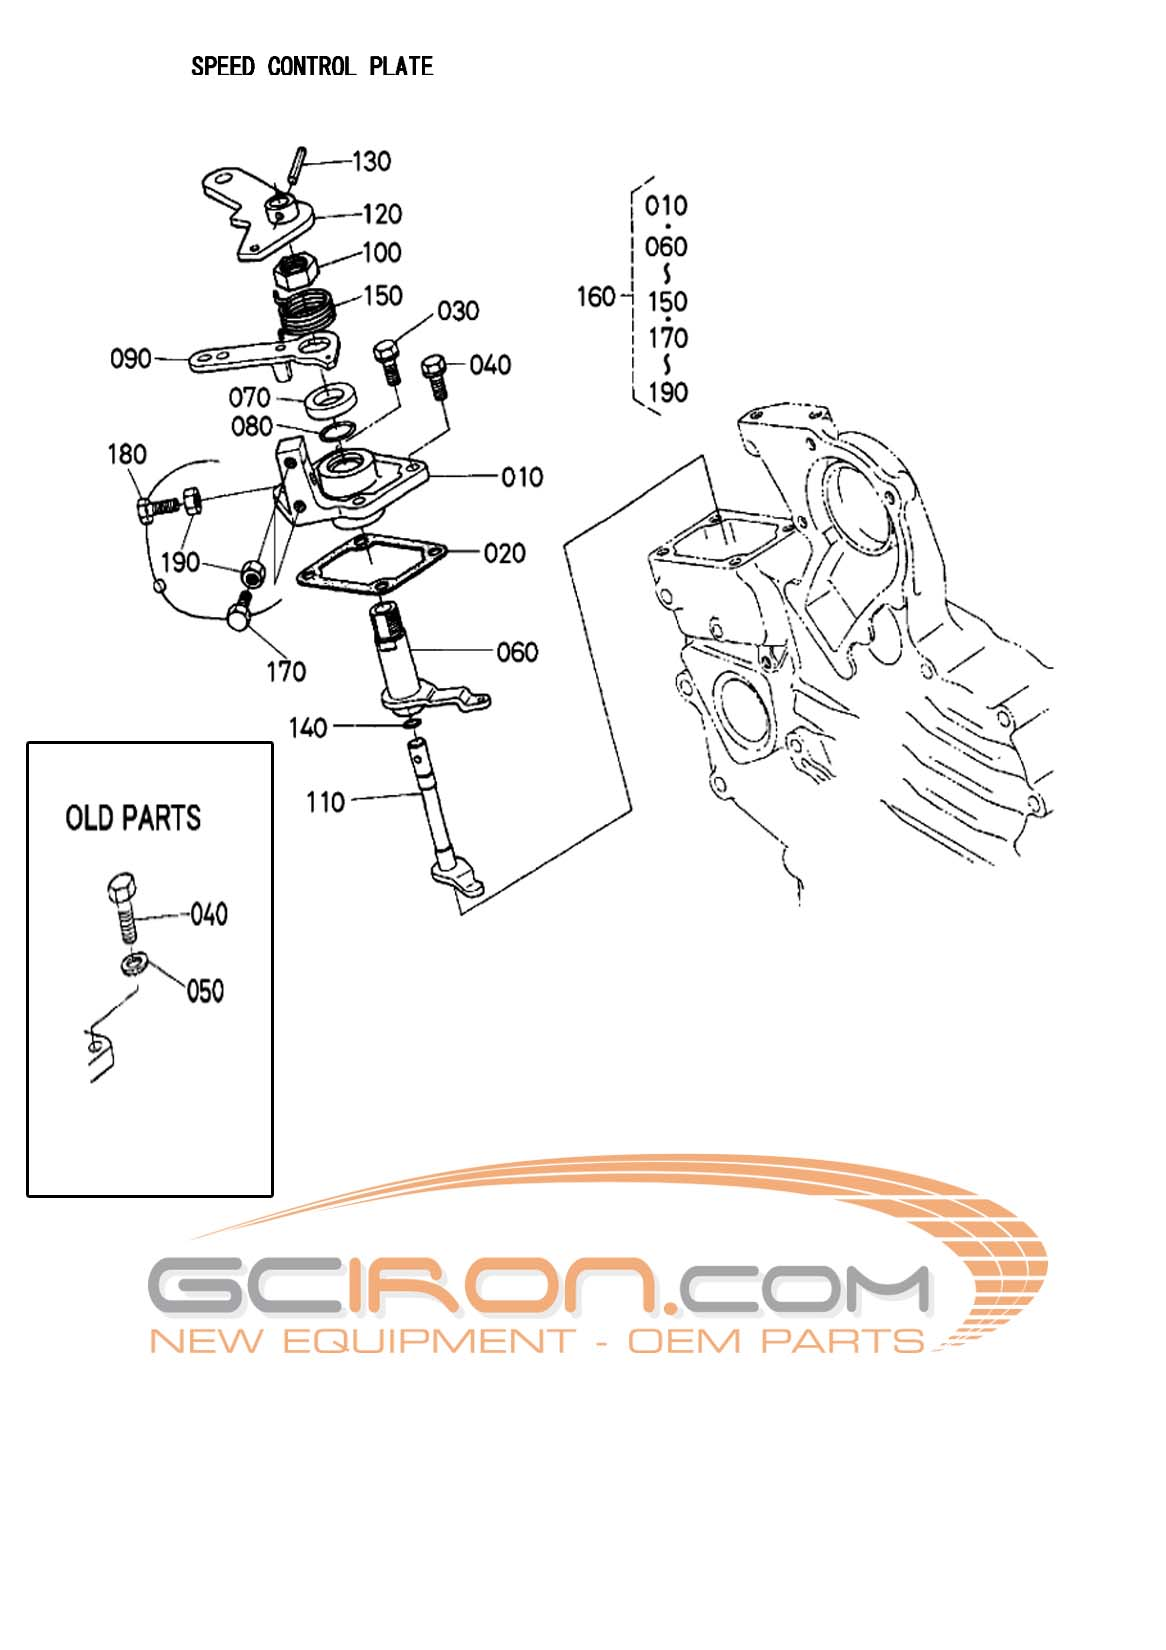 Wiring Diagram For Kubota L3800 Trusted Diagrams L3400 L2800 Parts Find U2022 With Backhoe